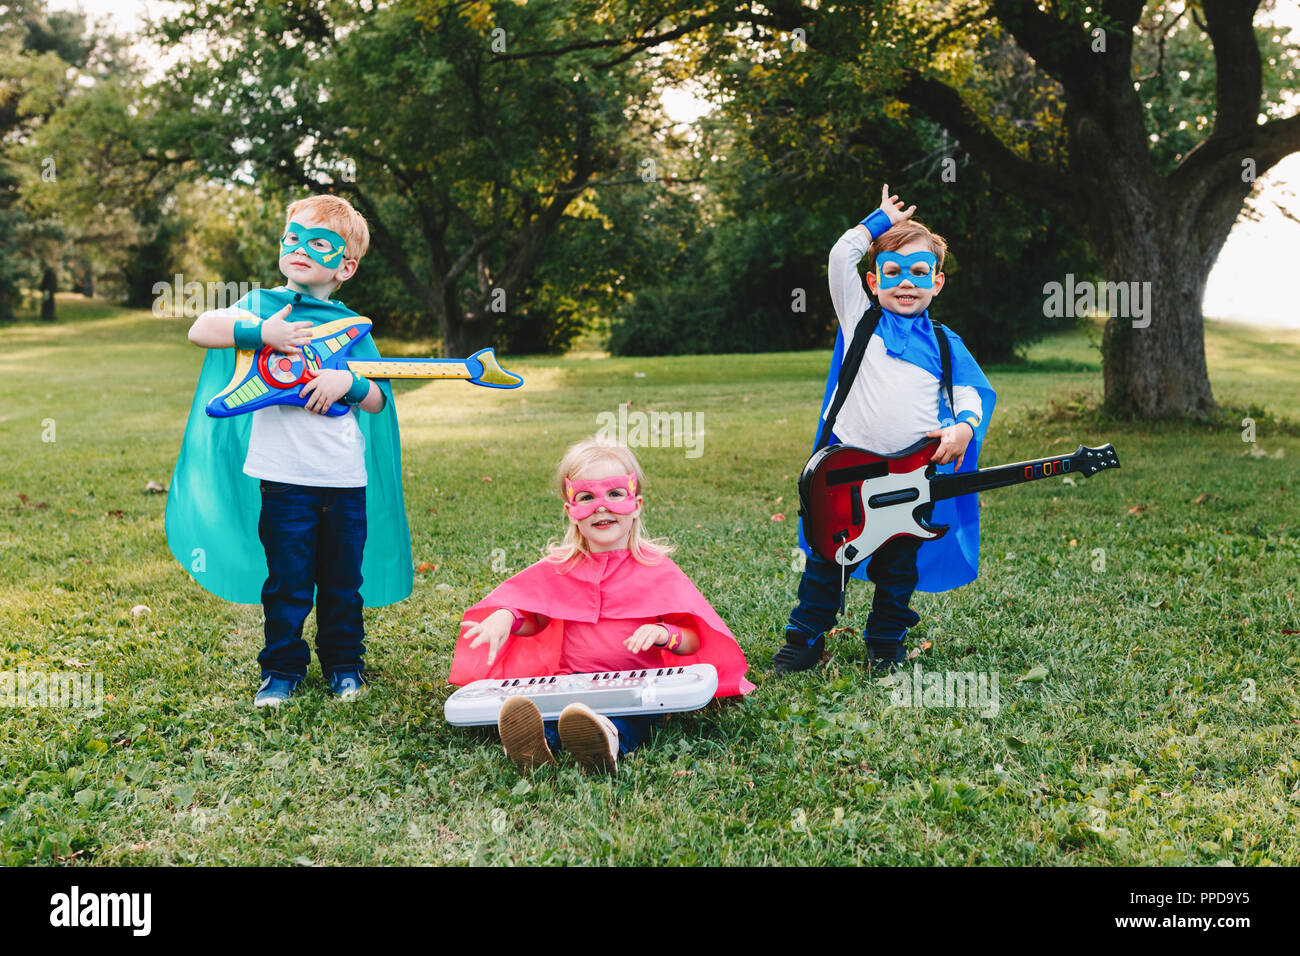 Cute adorable preschool Caucasian children playing superheroes music band rock group. Three kids friends having fun together outdoors in park. Happy a - Stock Image